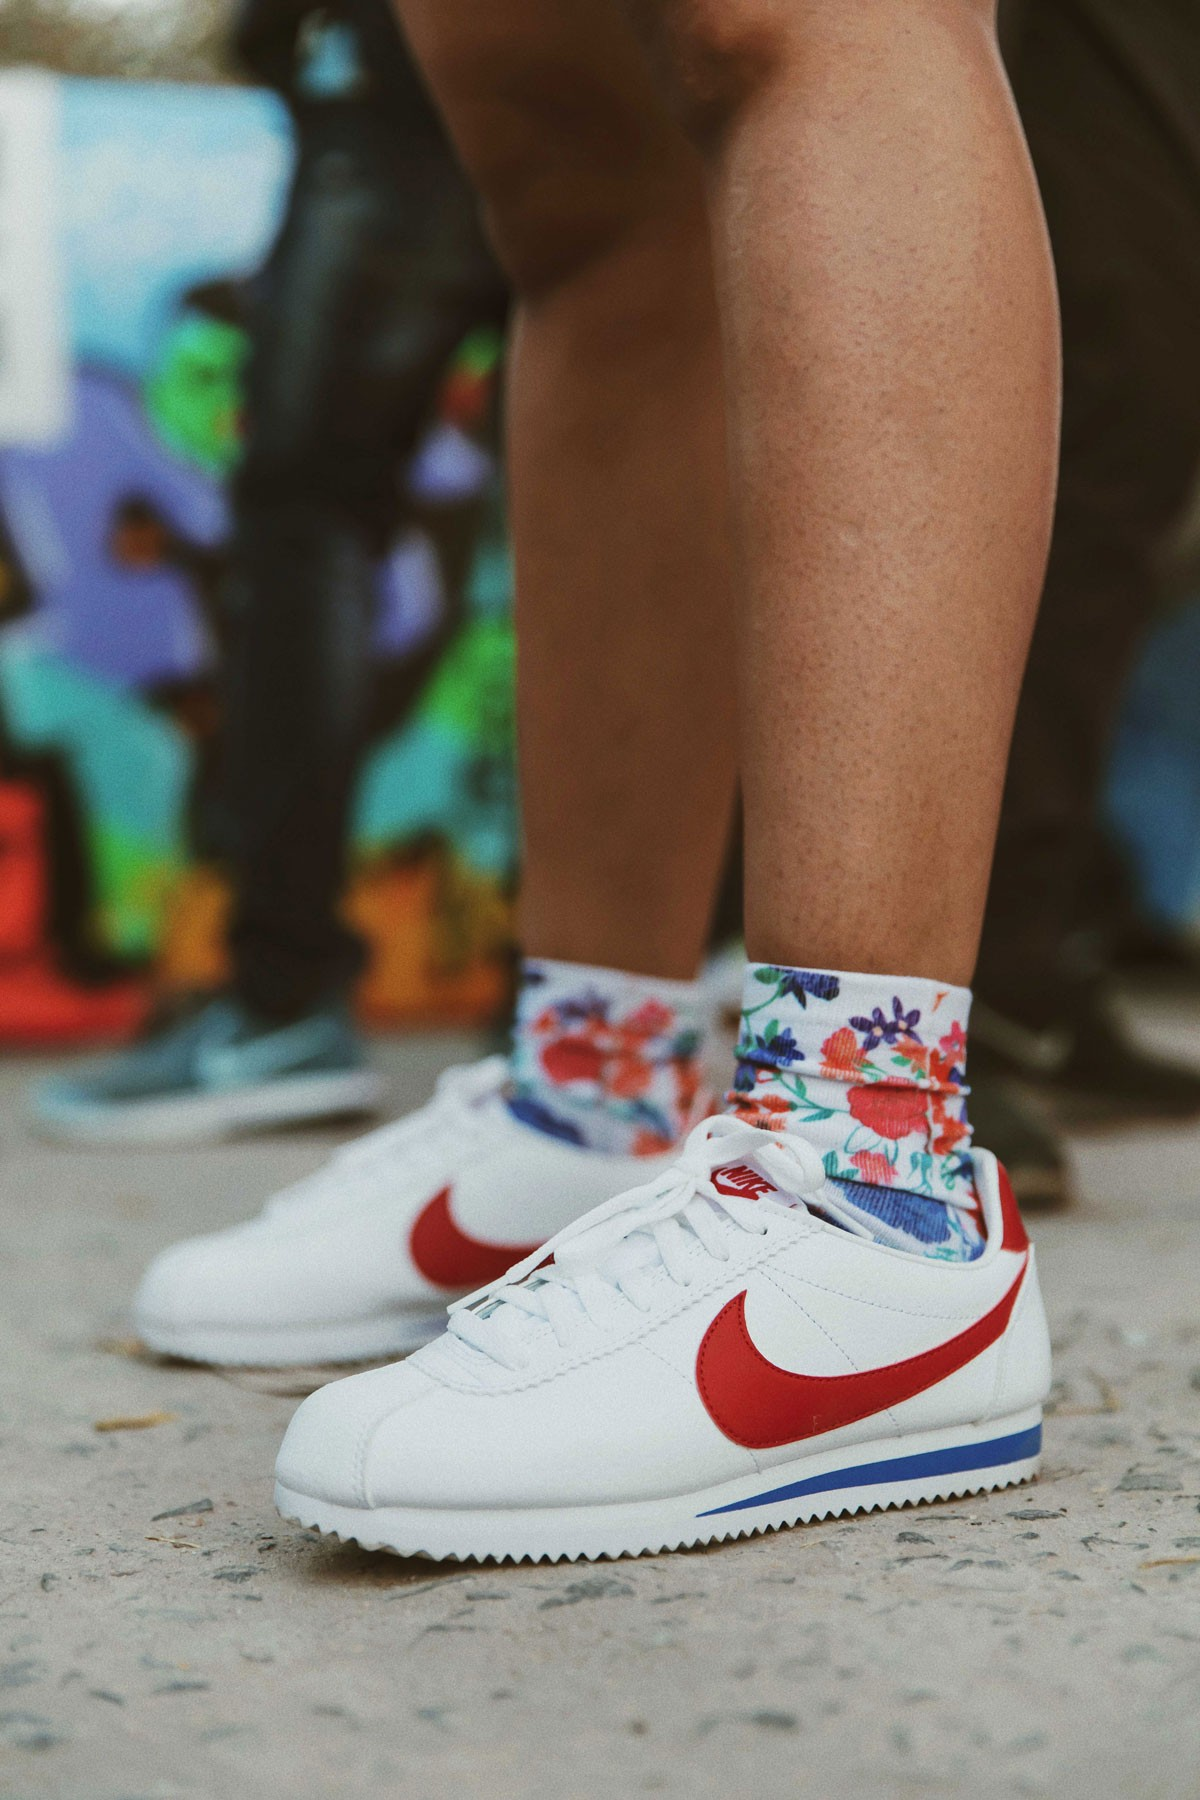 Why India Could be the Next Big Sneaker